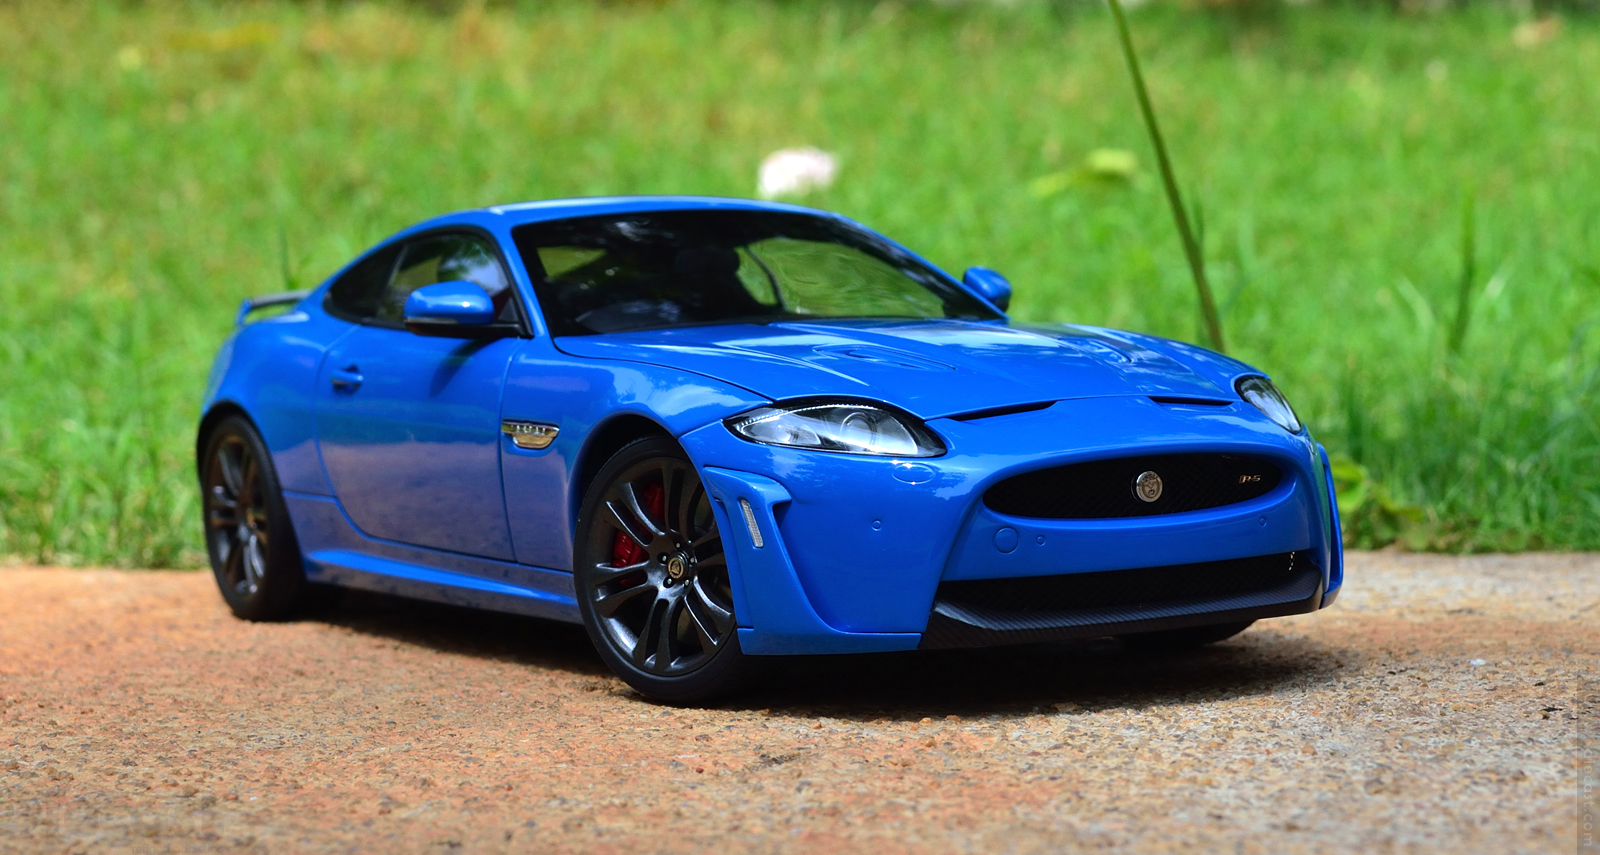 Autoart Jaguar Xkr S Coupe Diecast Car Review Xdiecast